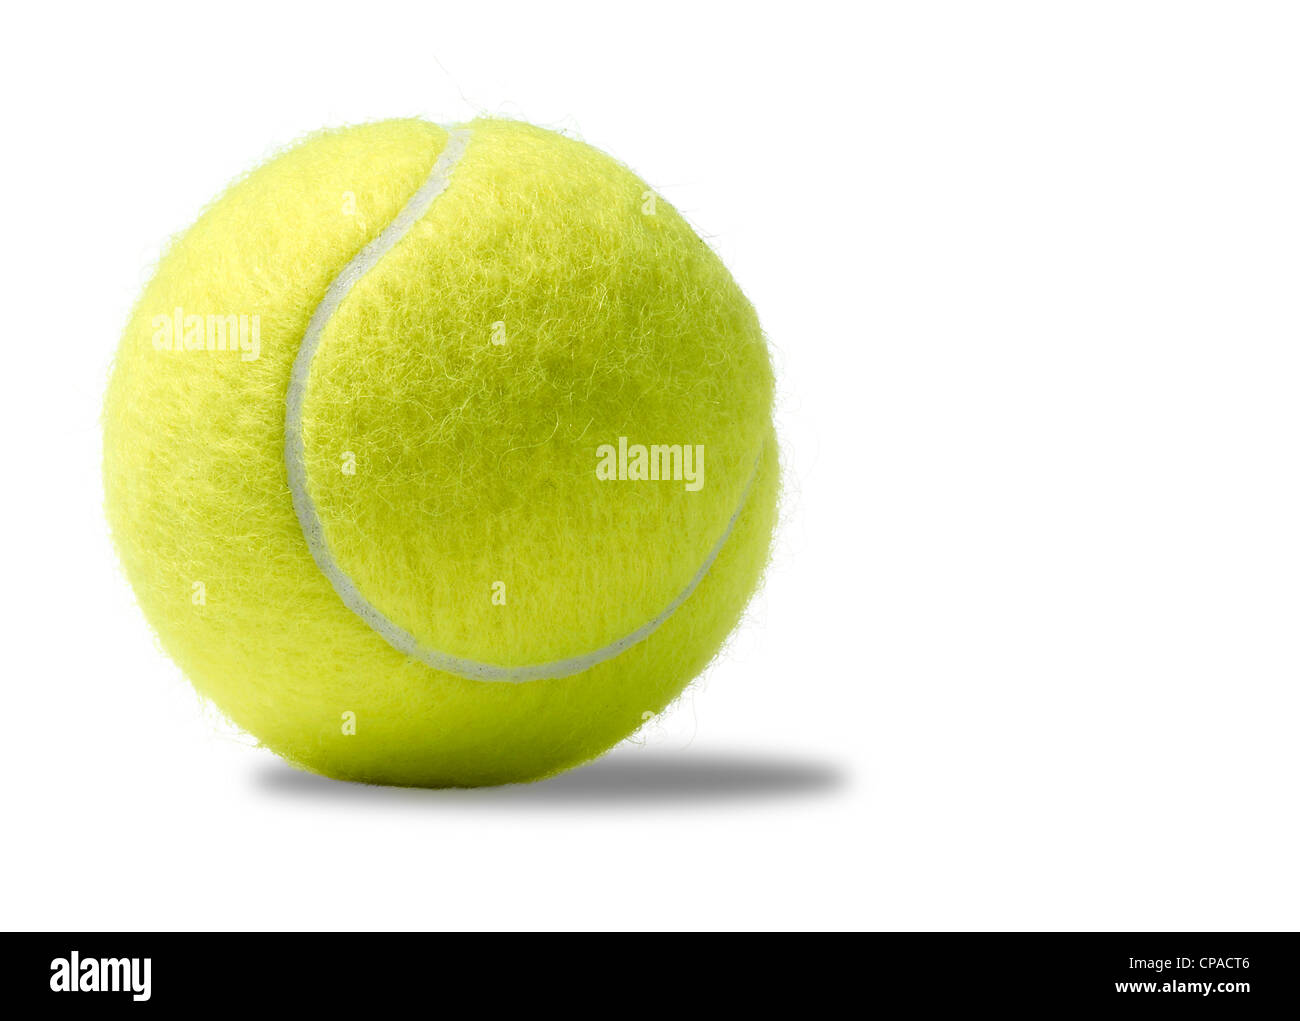 a yellow tennis ball on a white background - Stock Image